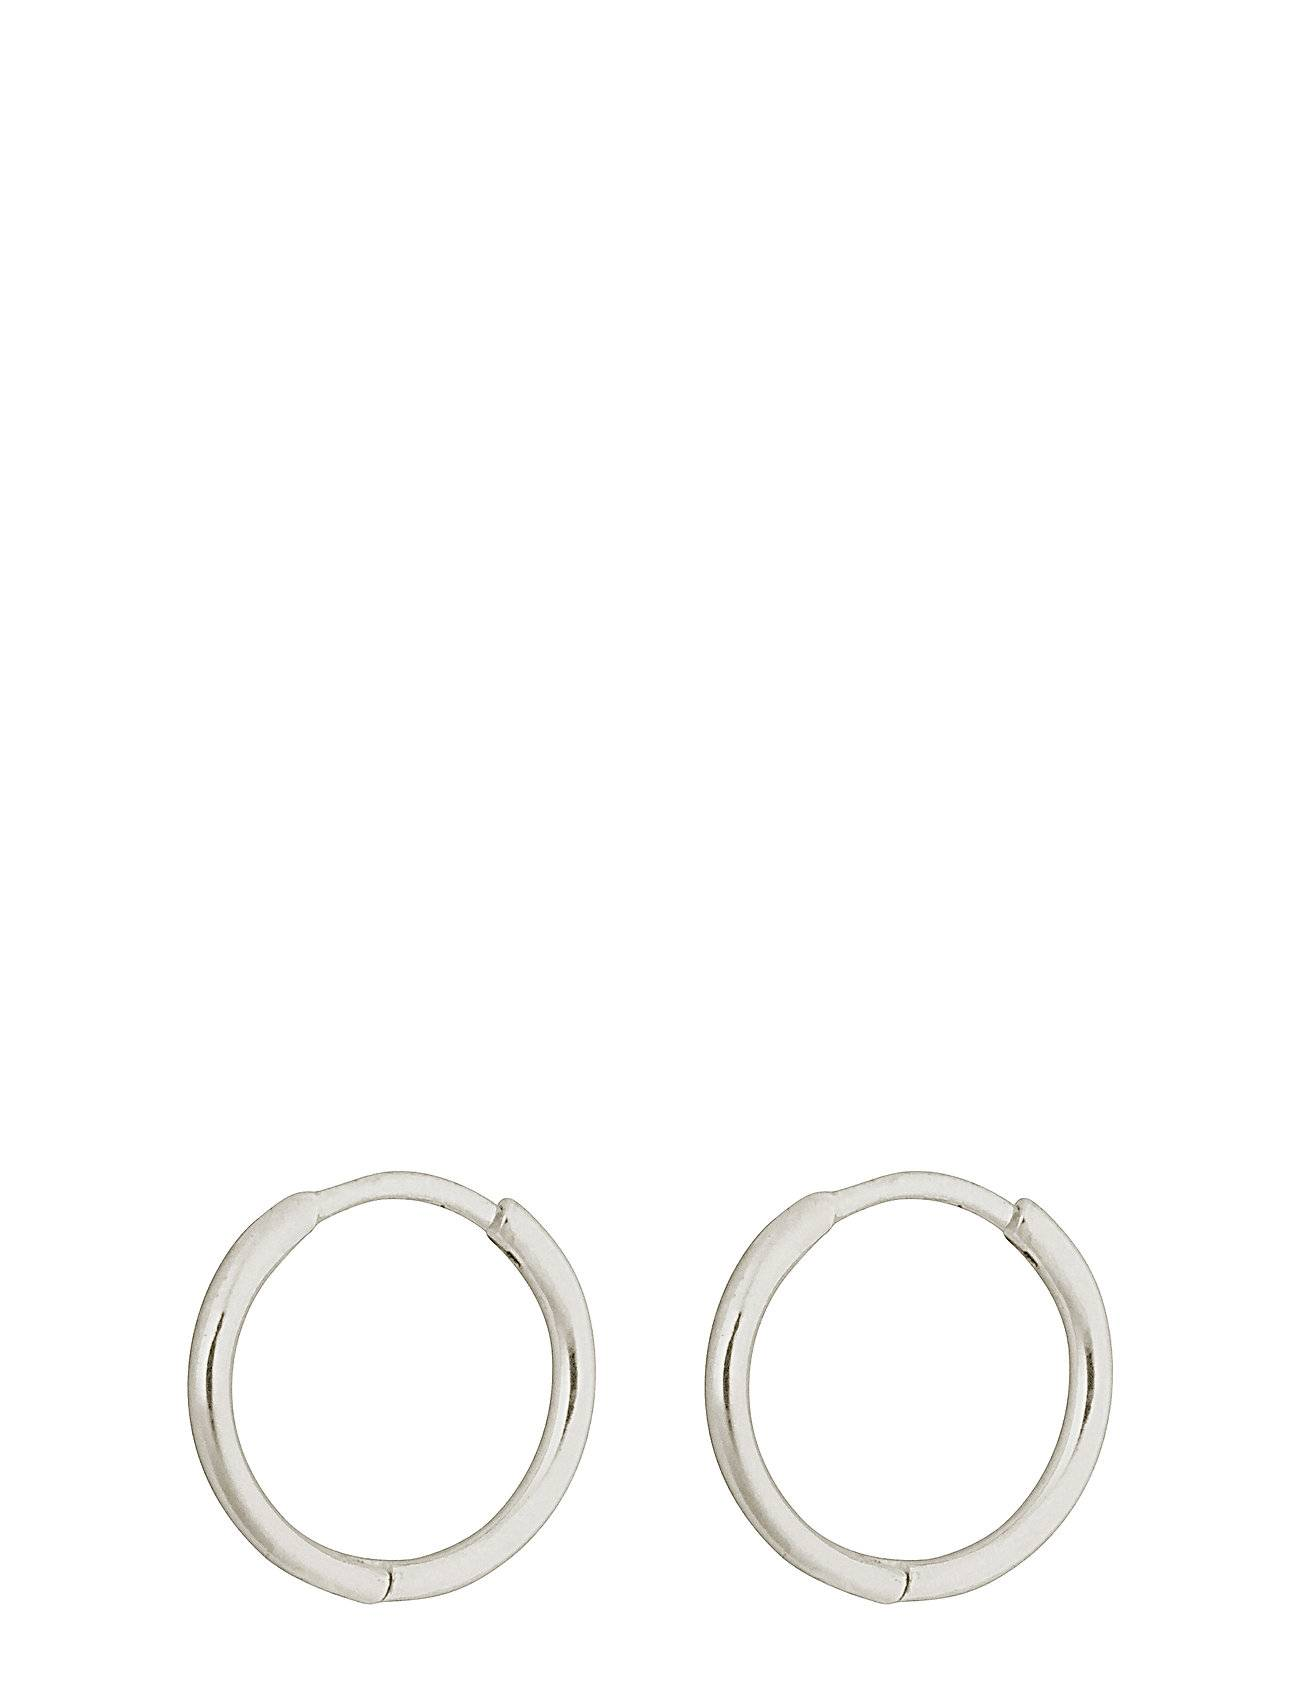 Syster P Beloved Small Hoops Silver Accessories Jewellery Earrings Hoops Hopea Syster P